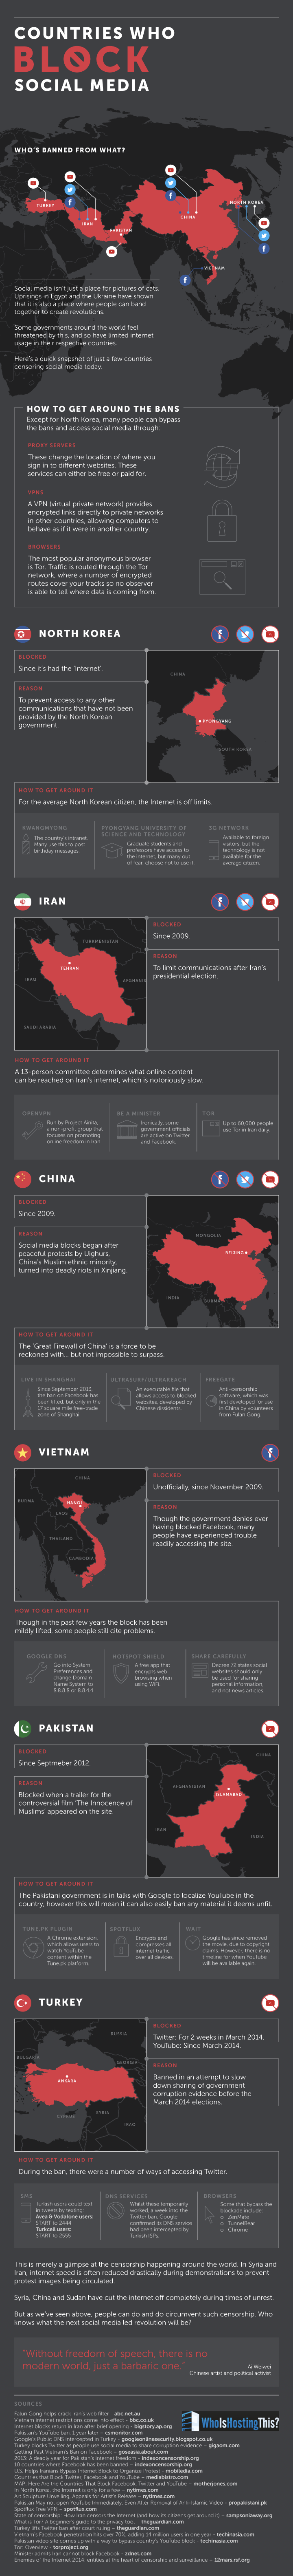 Infographic: Countries Who Block Facebook, Twitter, Youtube #infographic